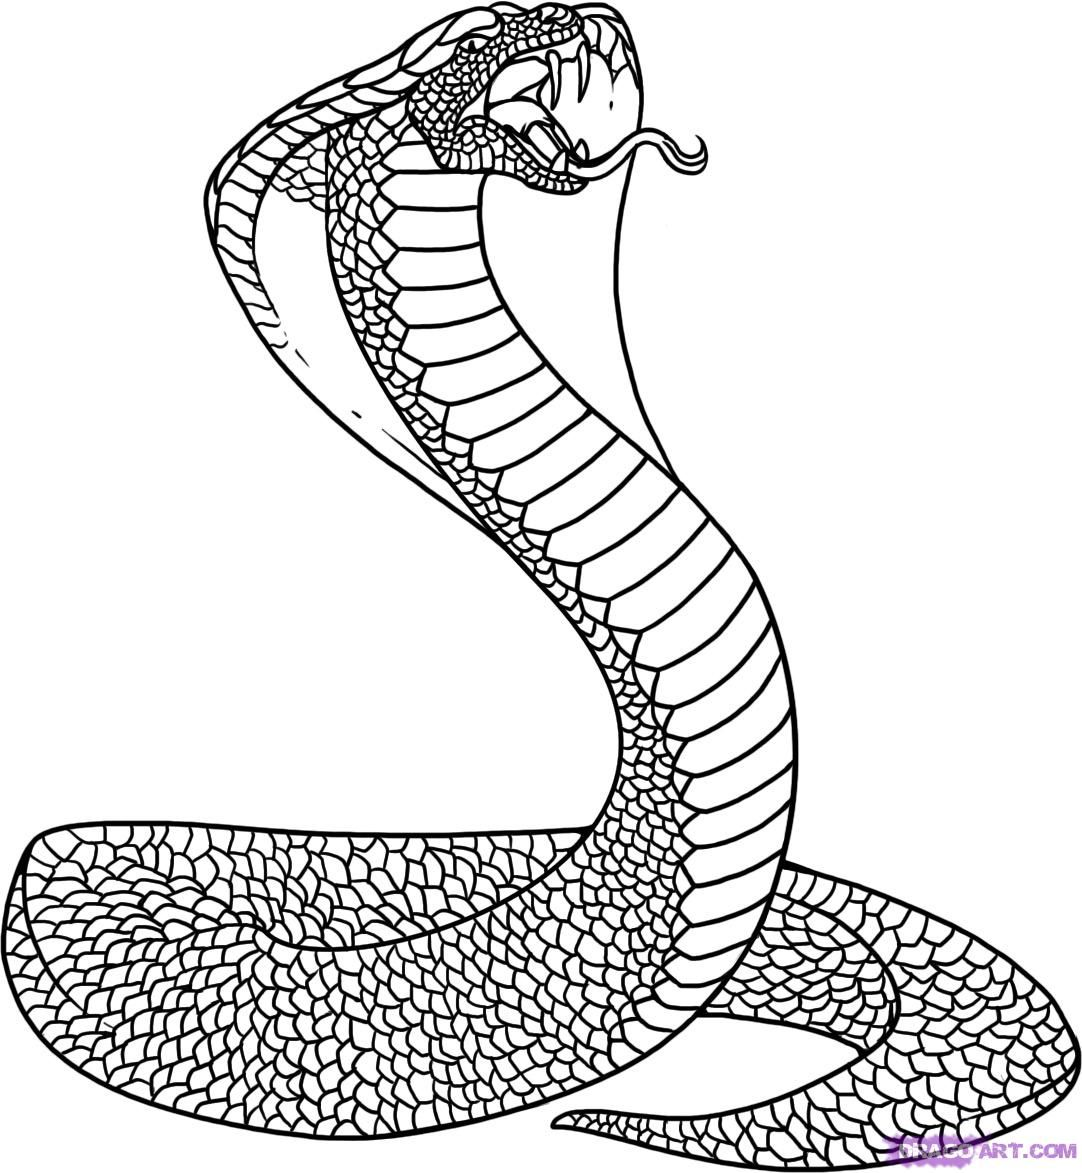 snakes online coloring pages and online coloring on pinterest